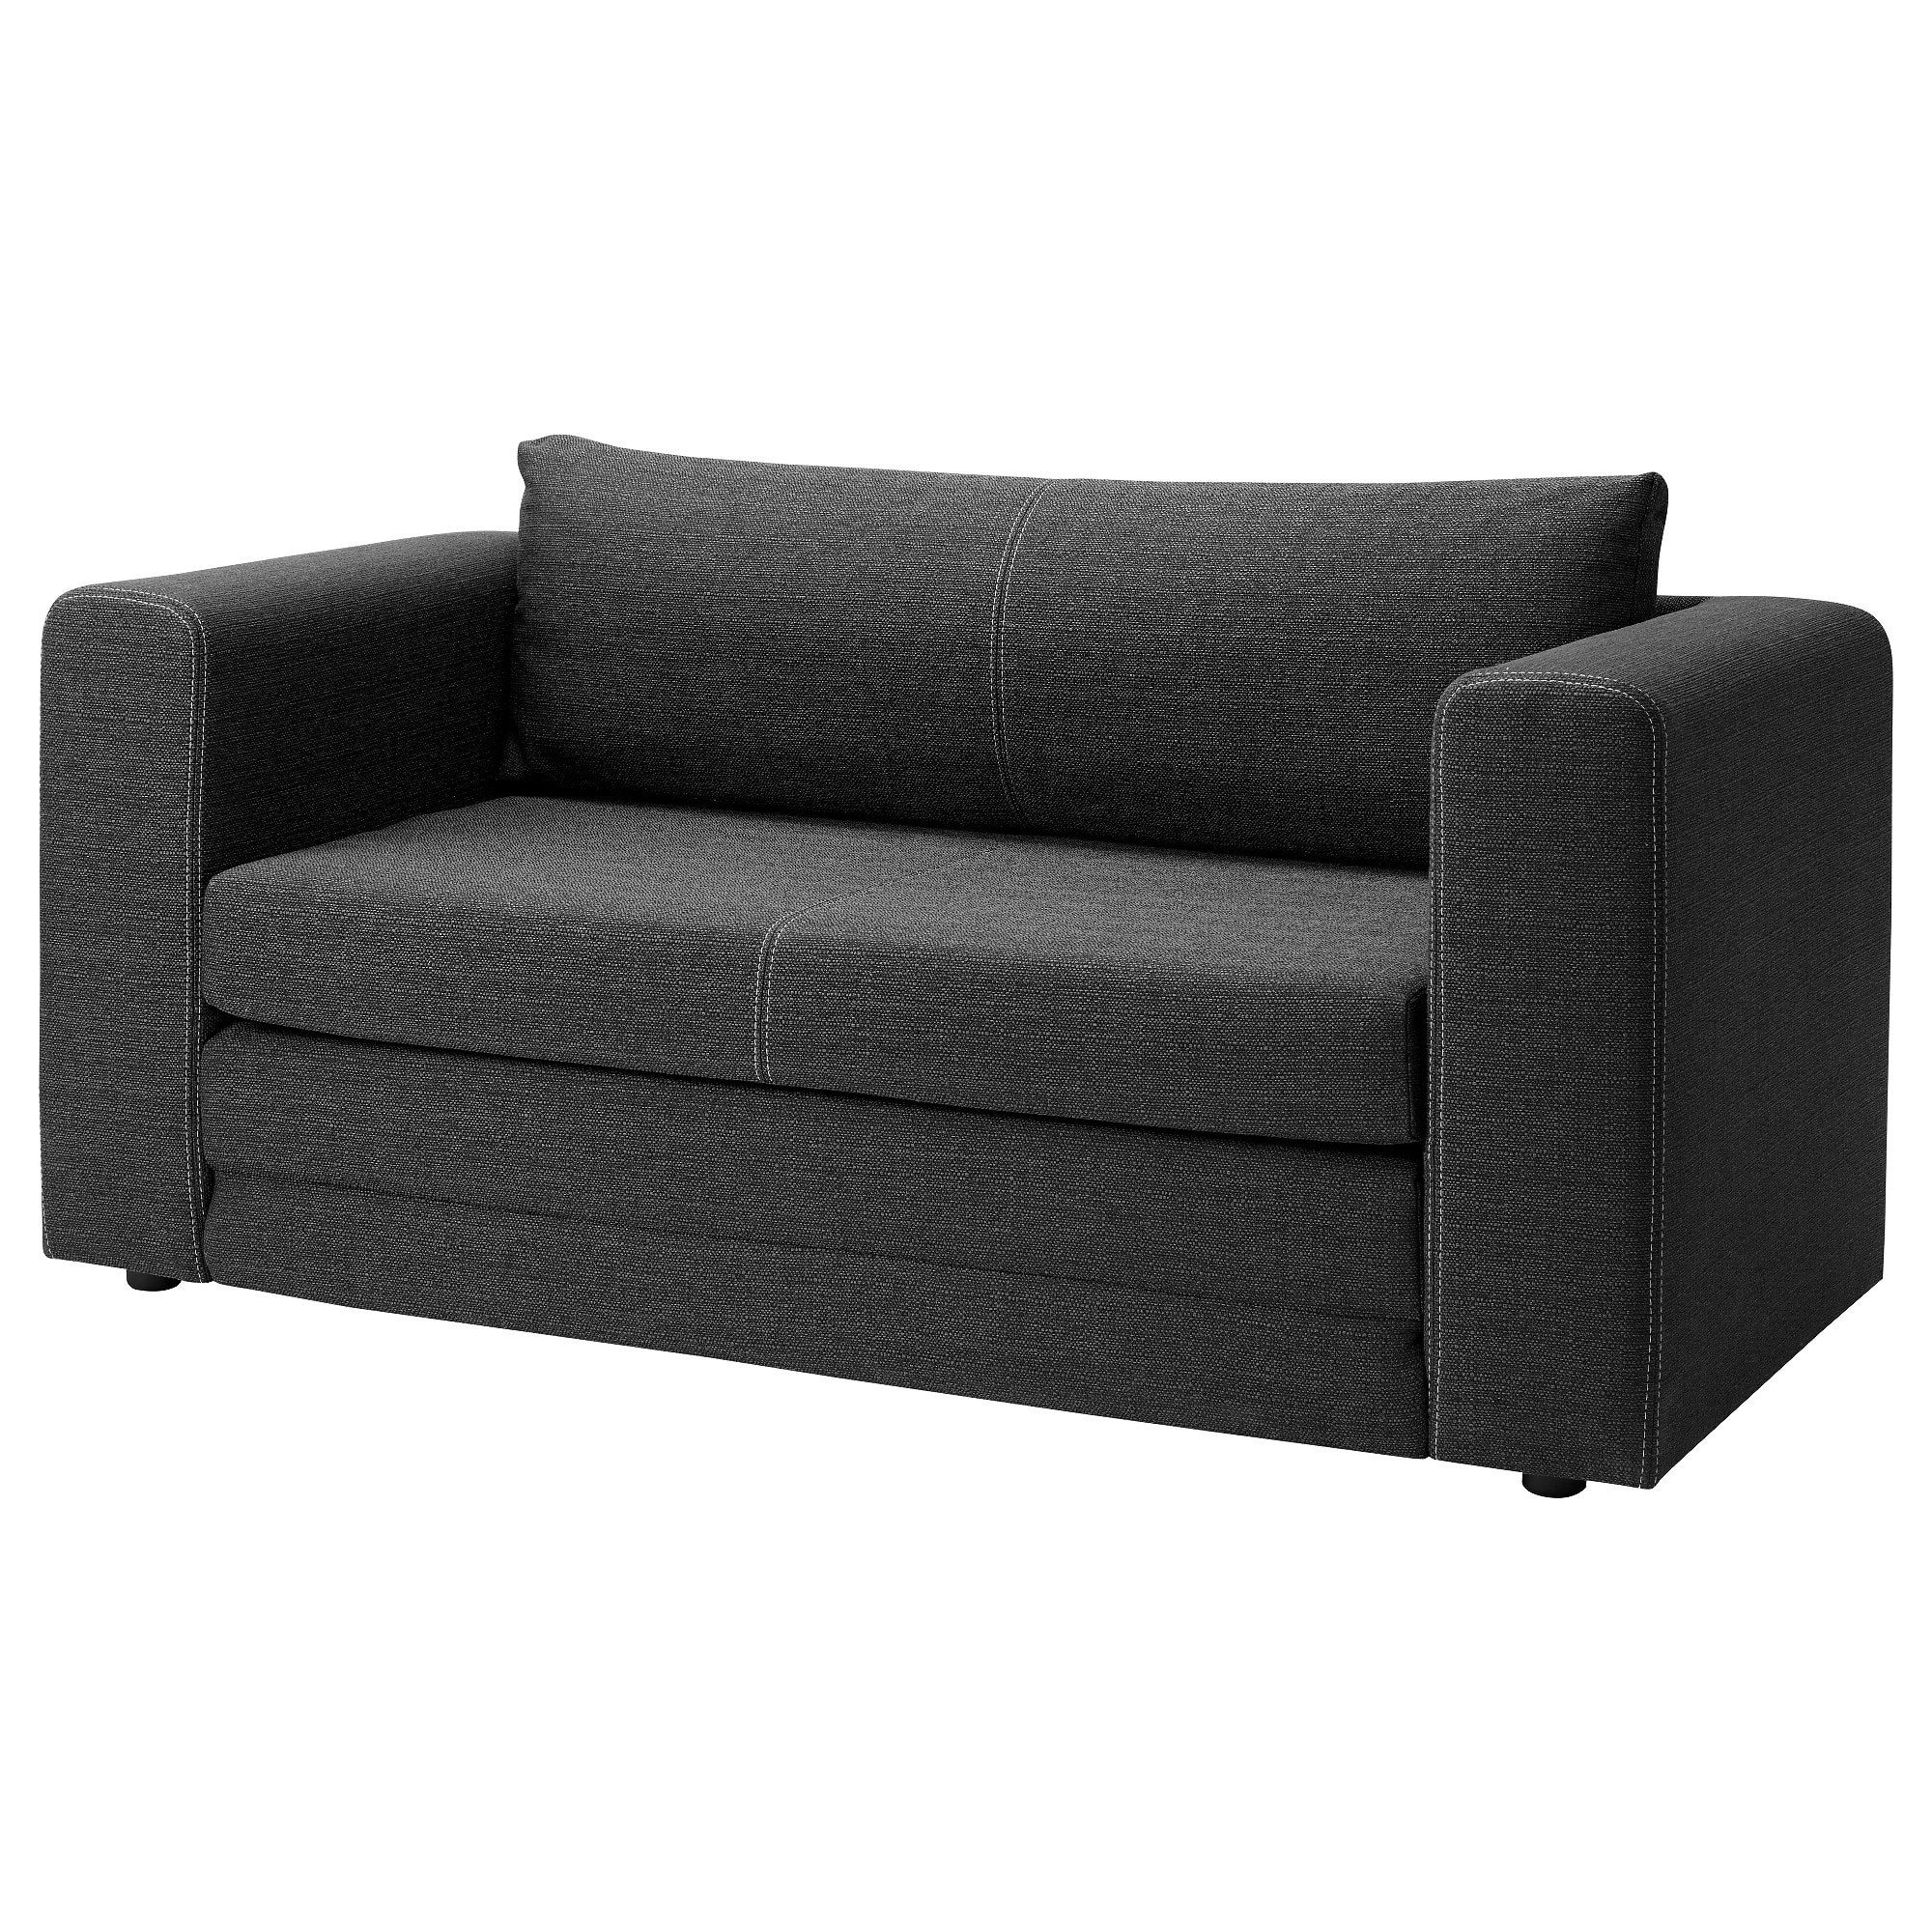 Askeby 2er Bettsofa Grau Ikea Deutschland Bettsofa